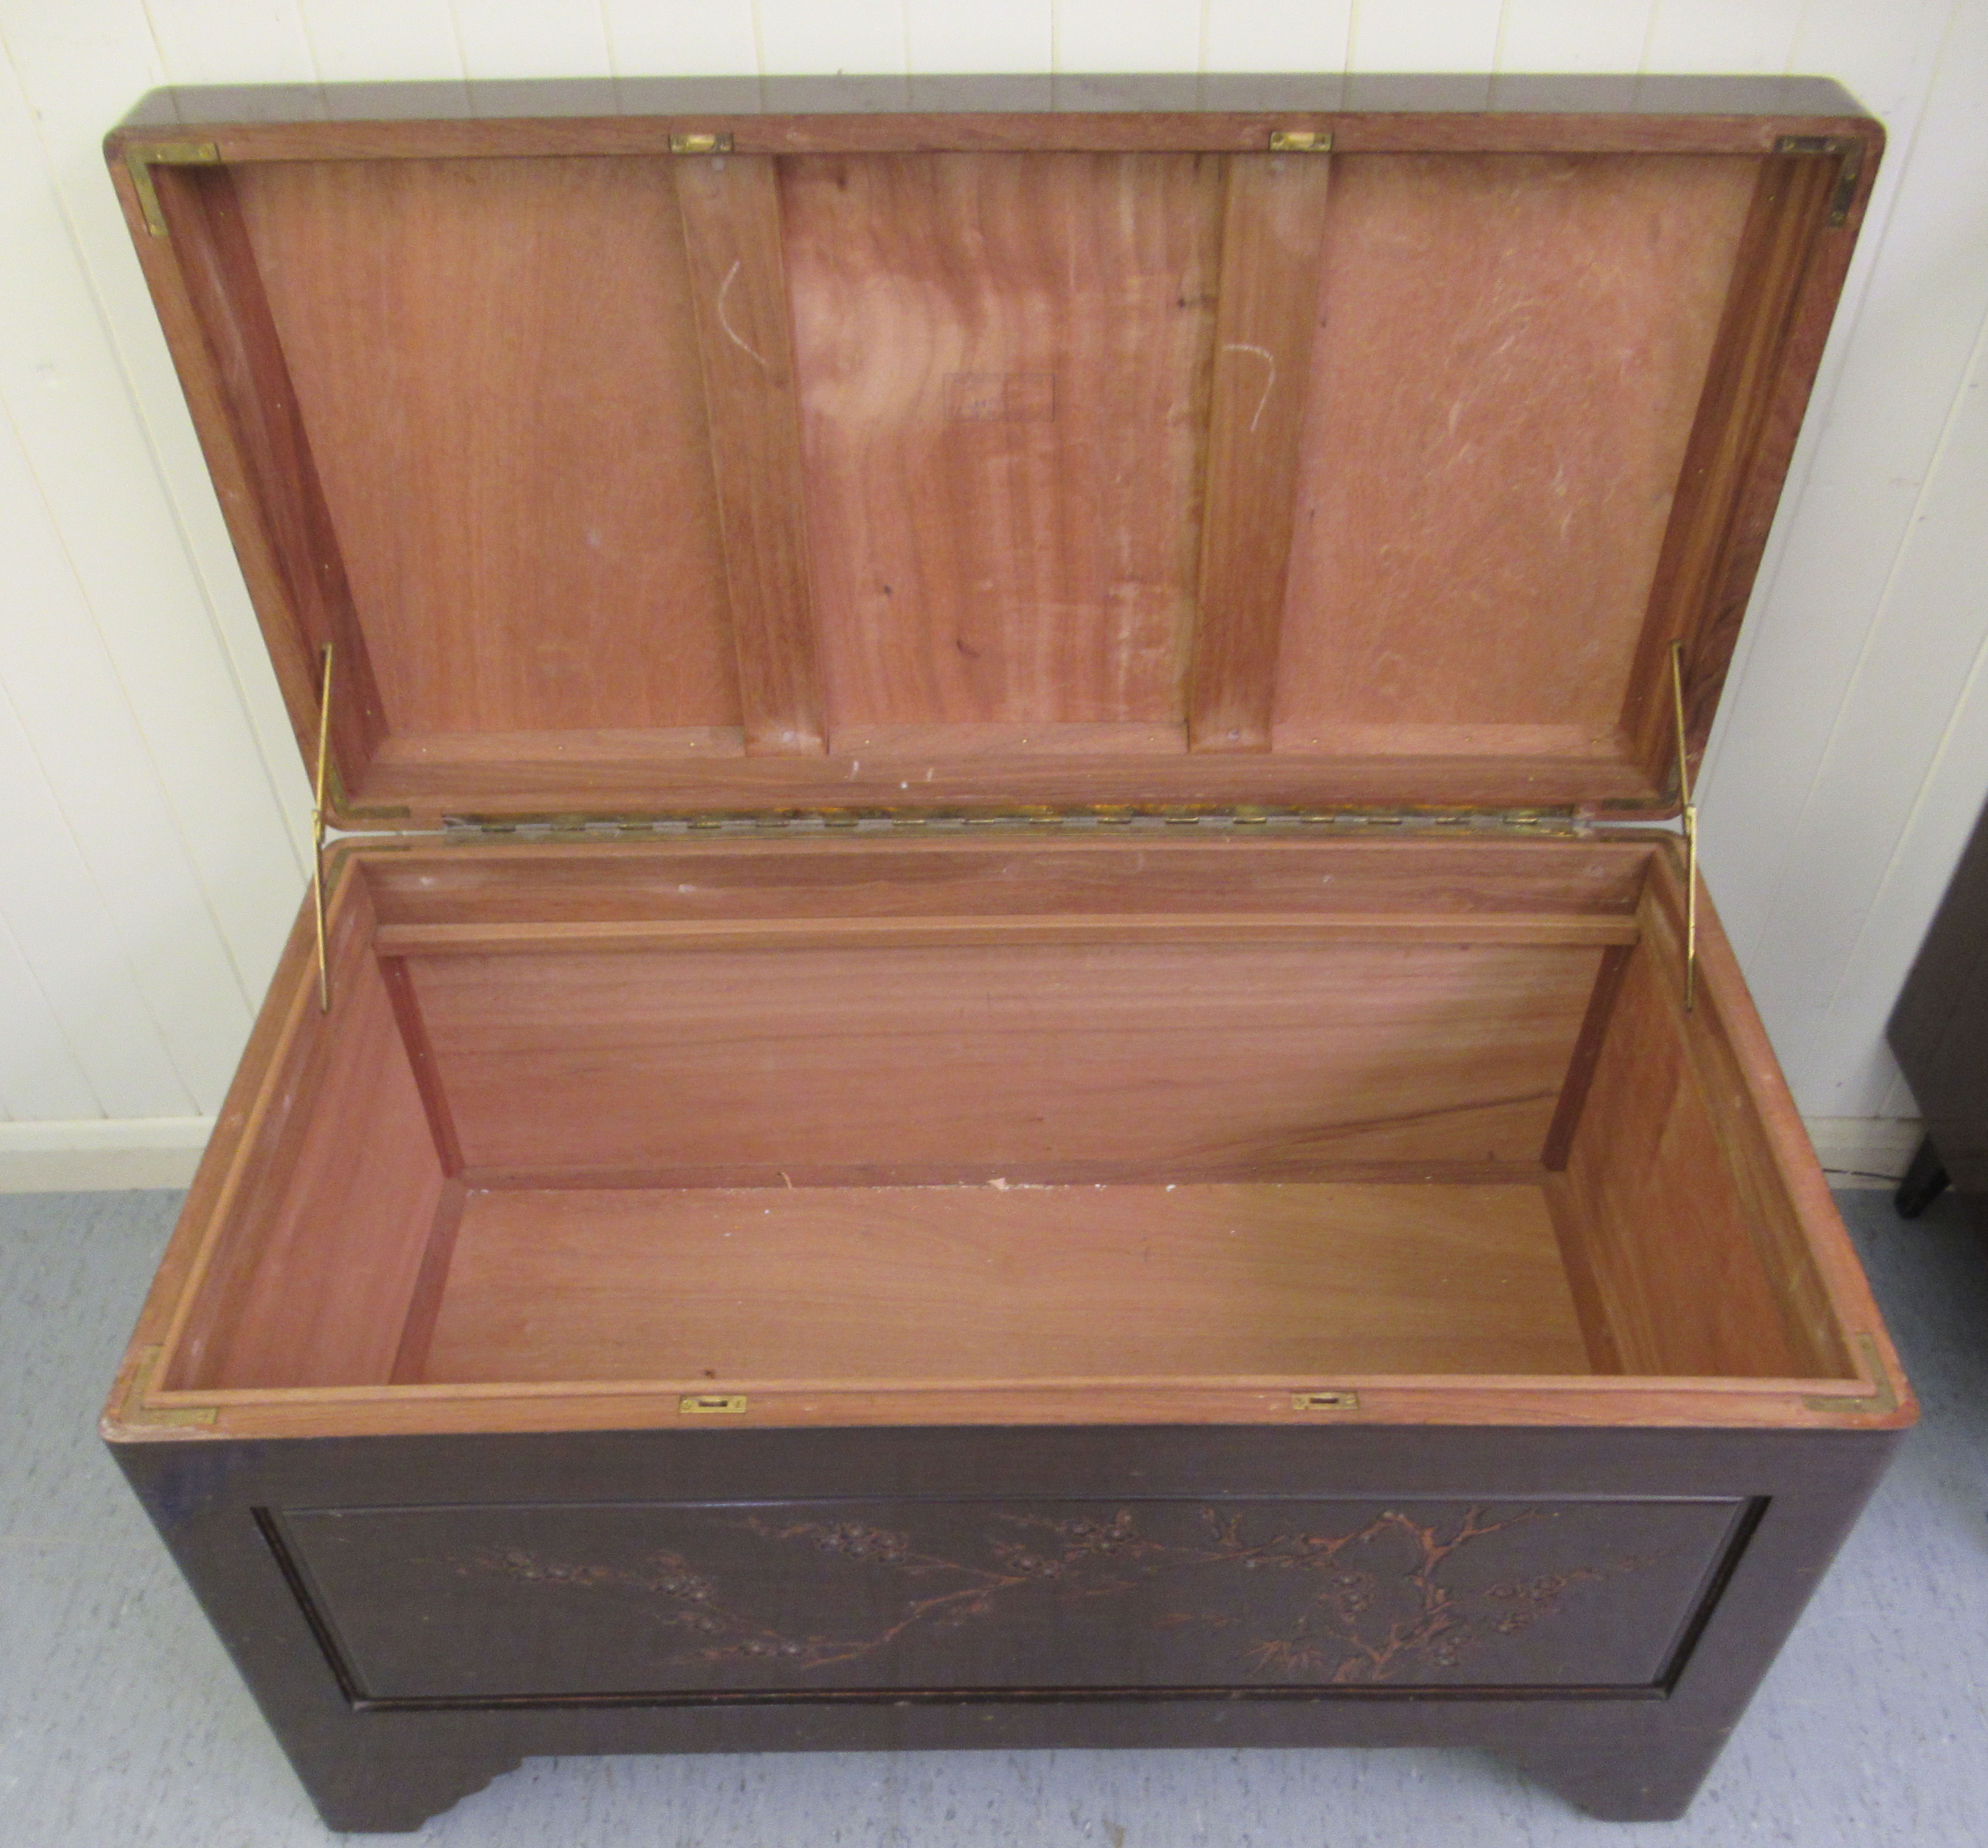 A mid 20thC Chinese carved camphorwood chest, having straight sides and a hinged lid, raised on - Image 4 of 6